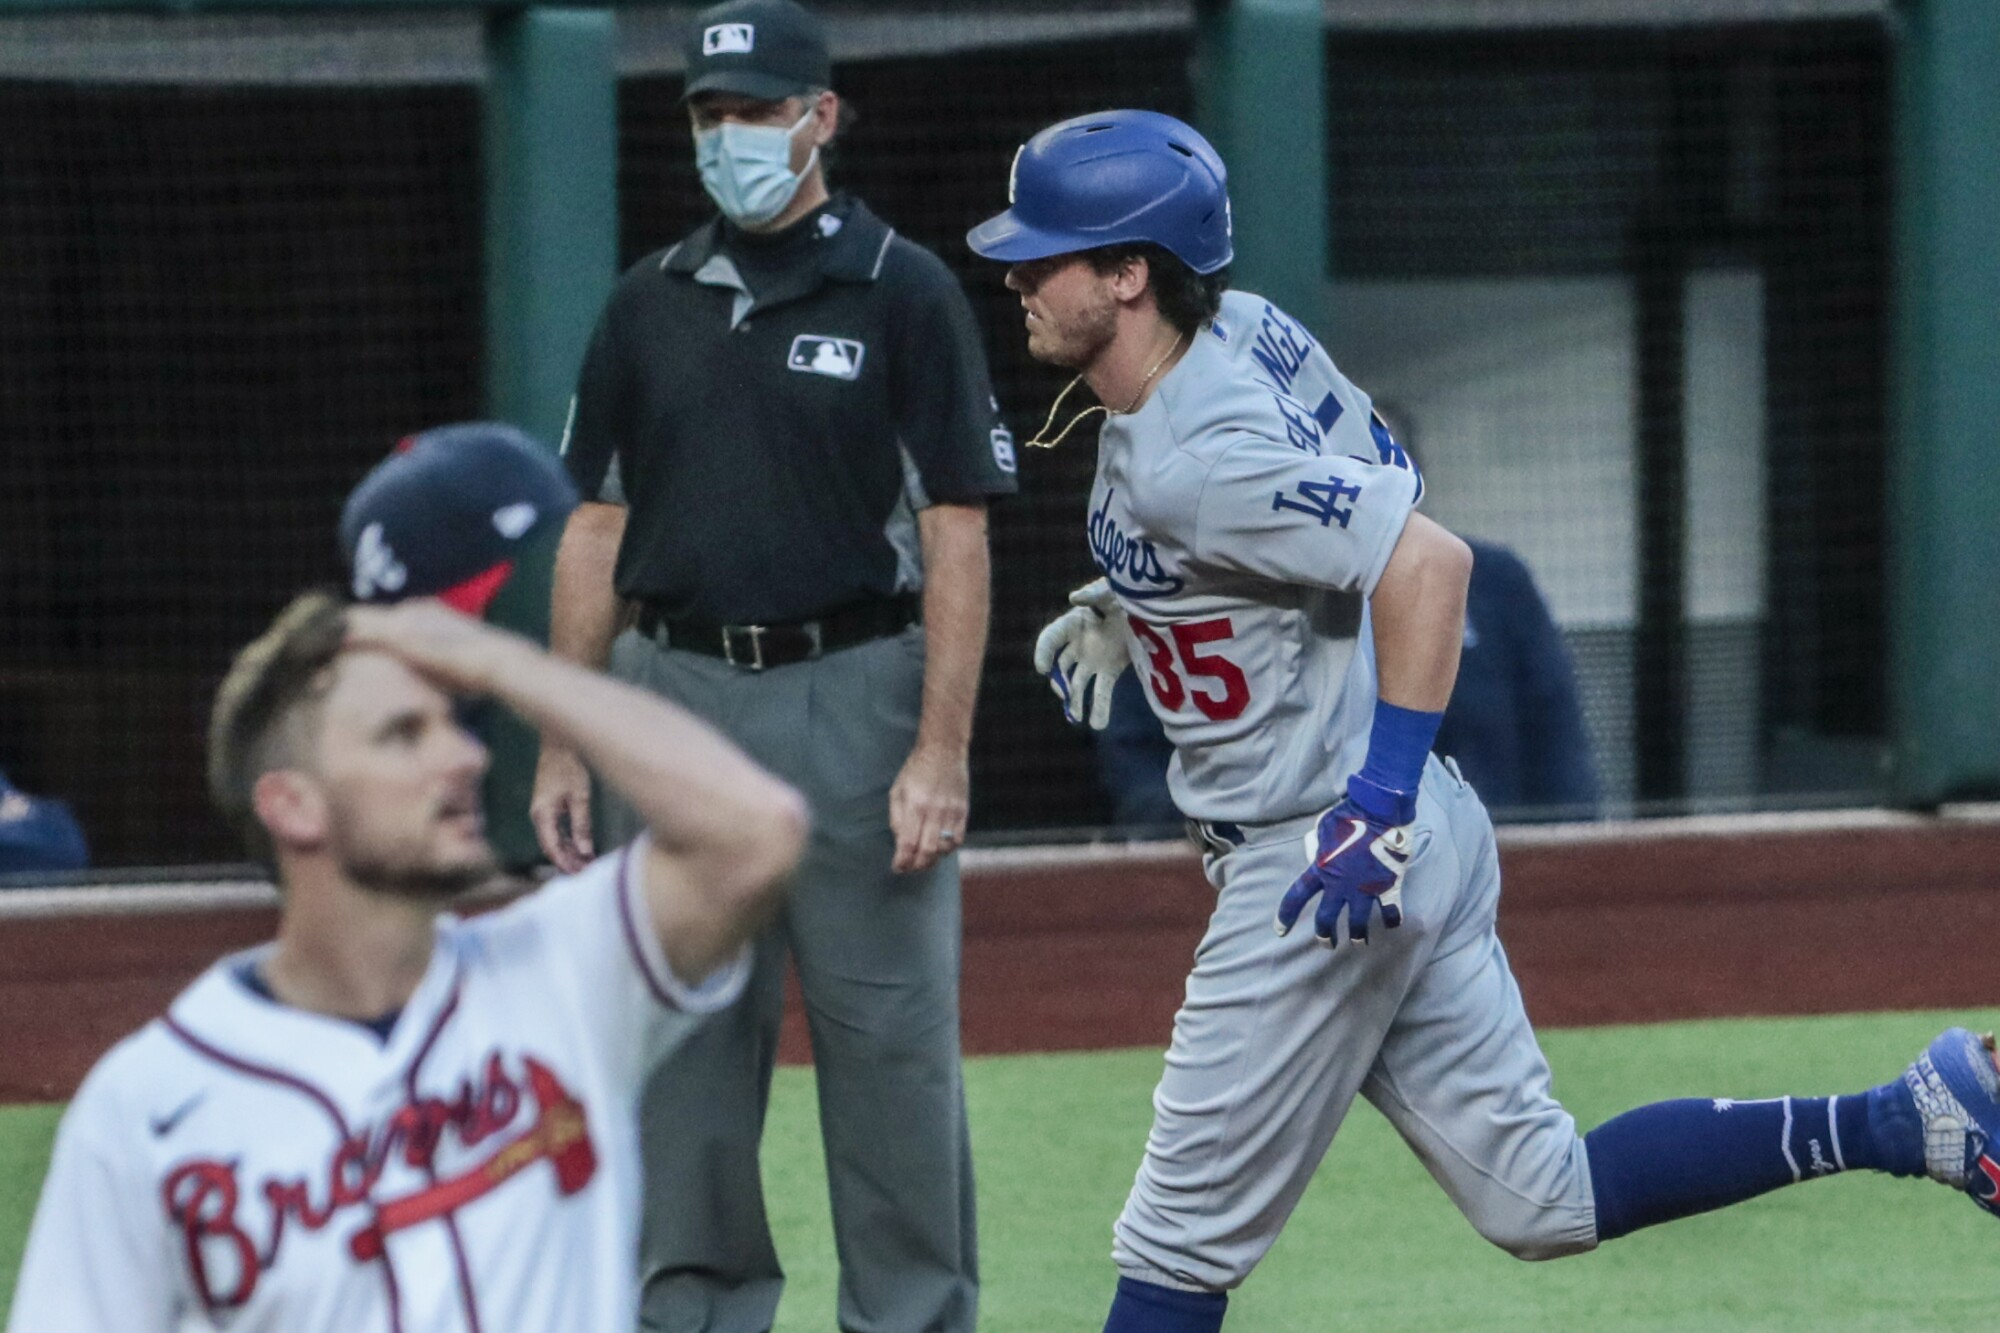 Dodgers center fielder Cody Bellinger circles the bases after hitting a home run off Braves relief pitcher Grant Dayton